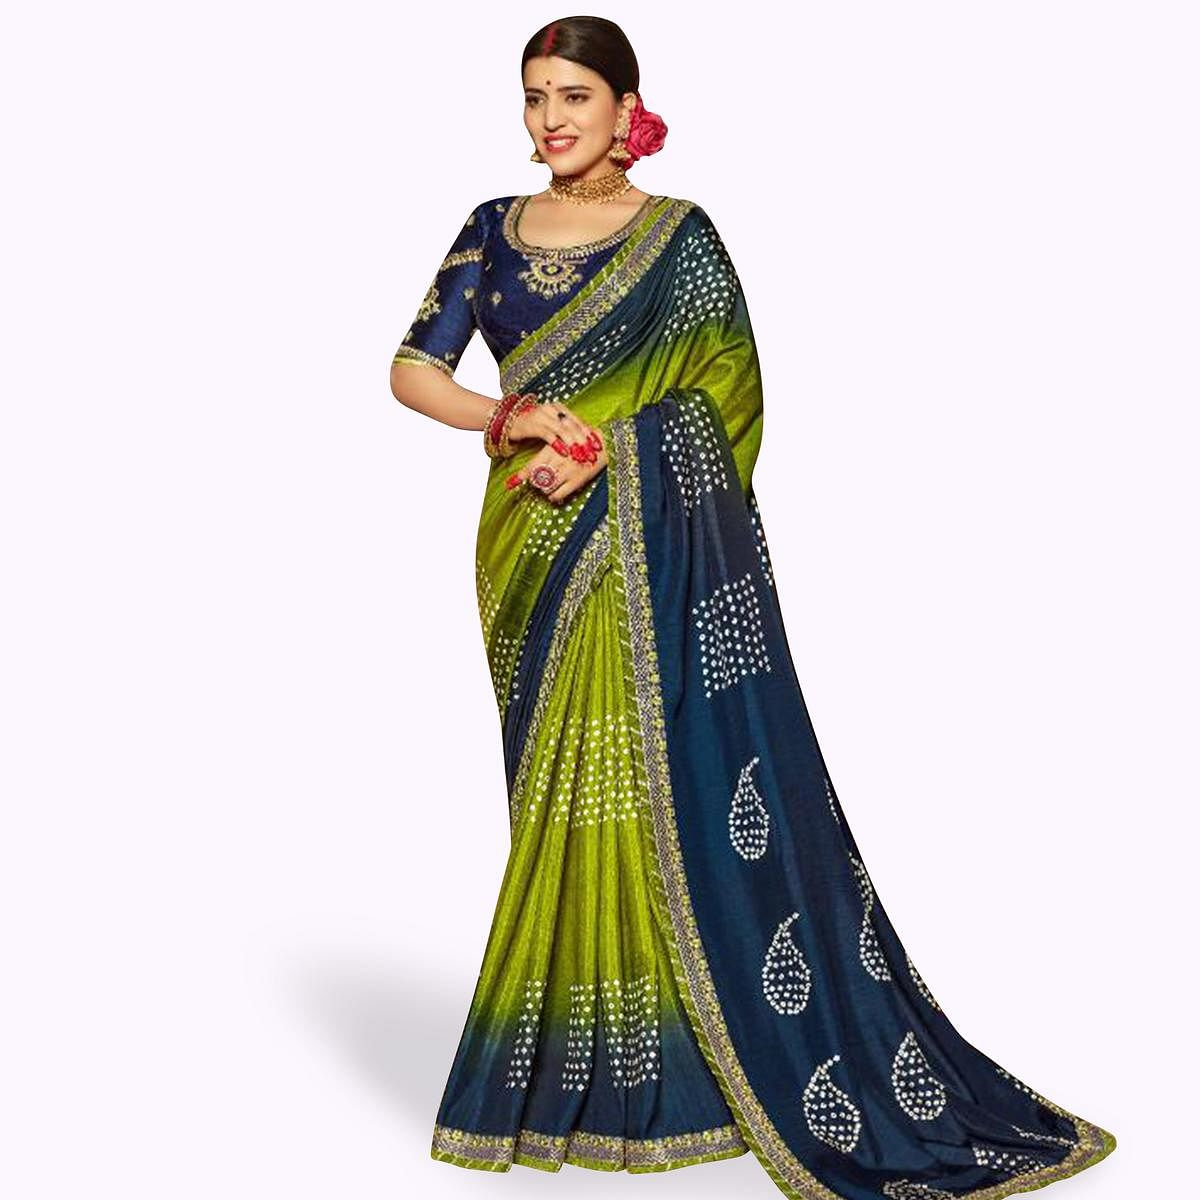 Ethnic Green-Blue Colored Partywear Bandhani Printed Art Silk Saree